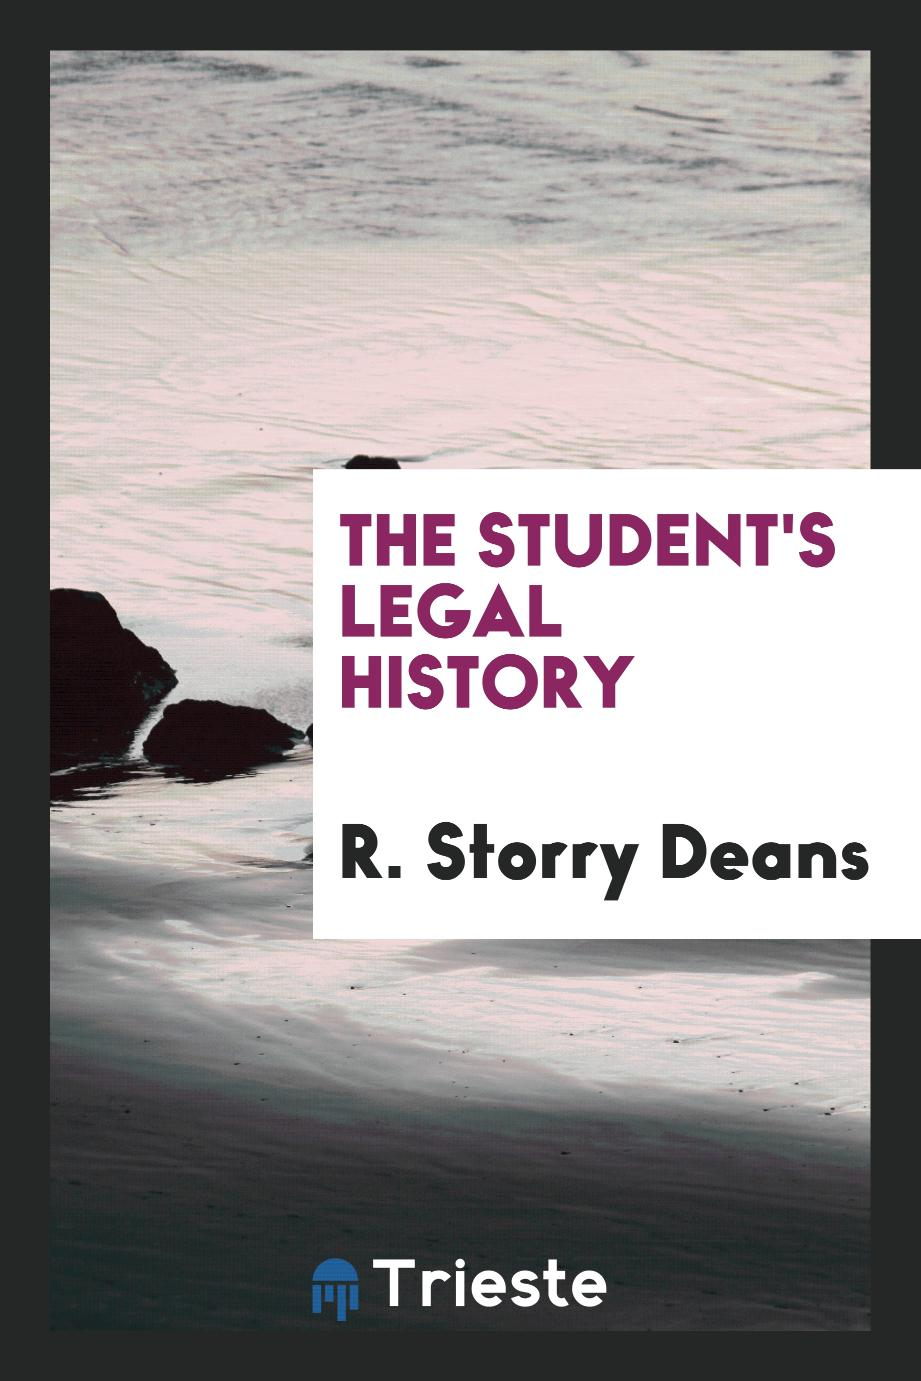 R. Storry Deans - The student's legal history